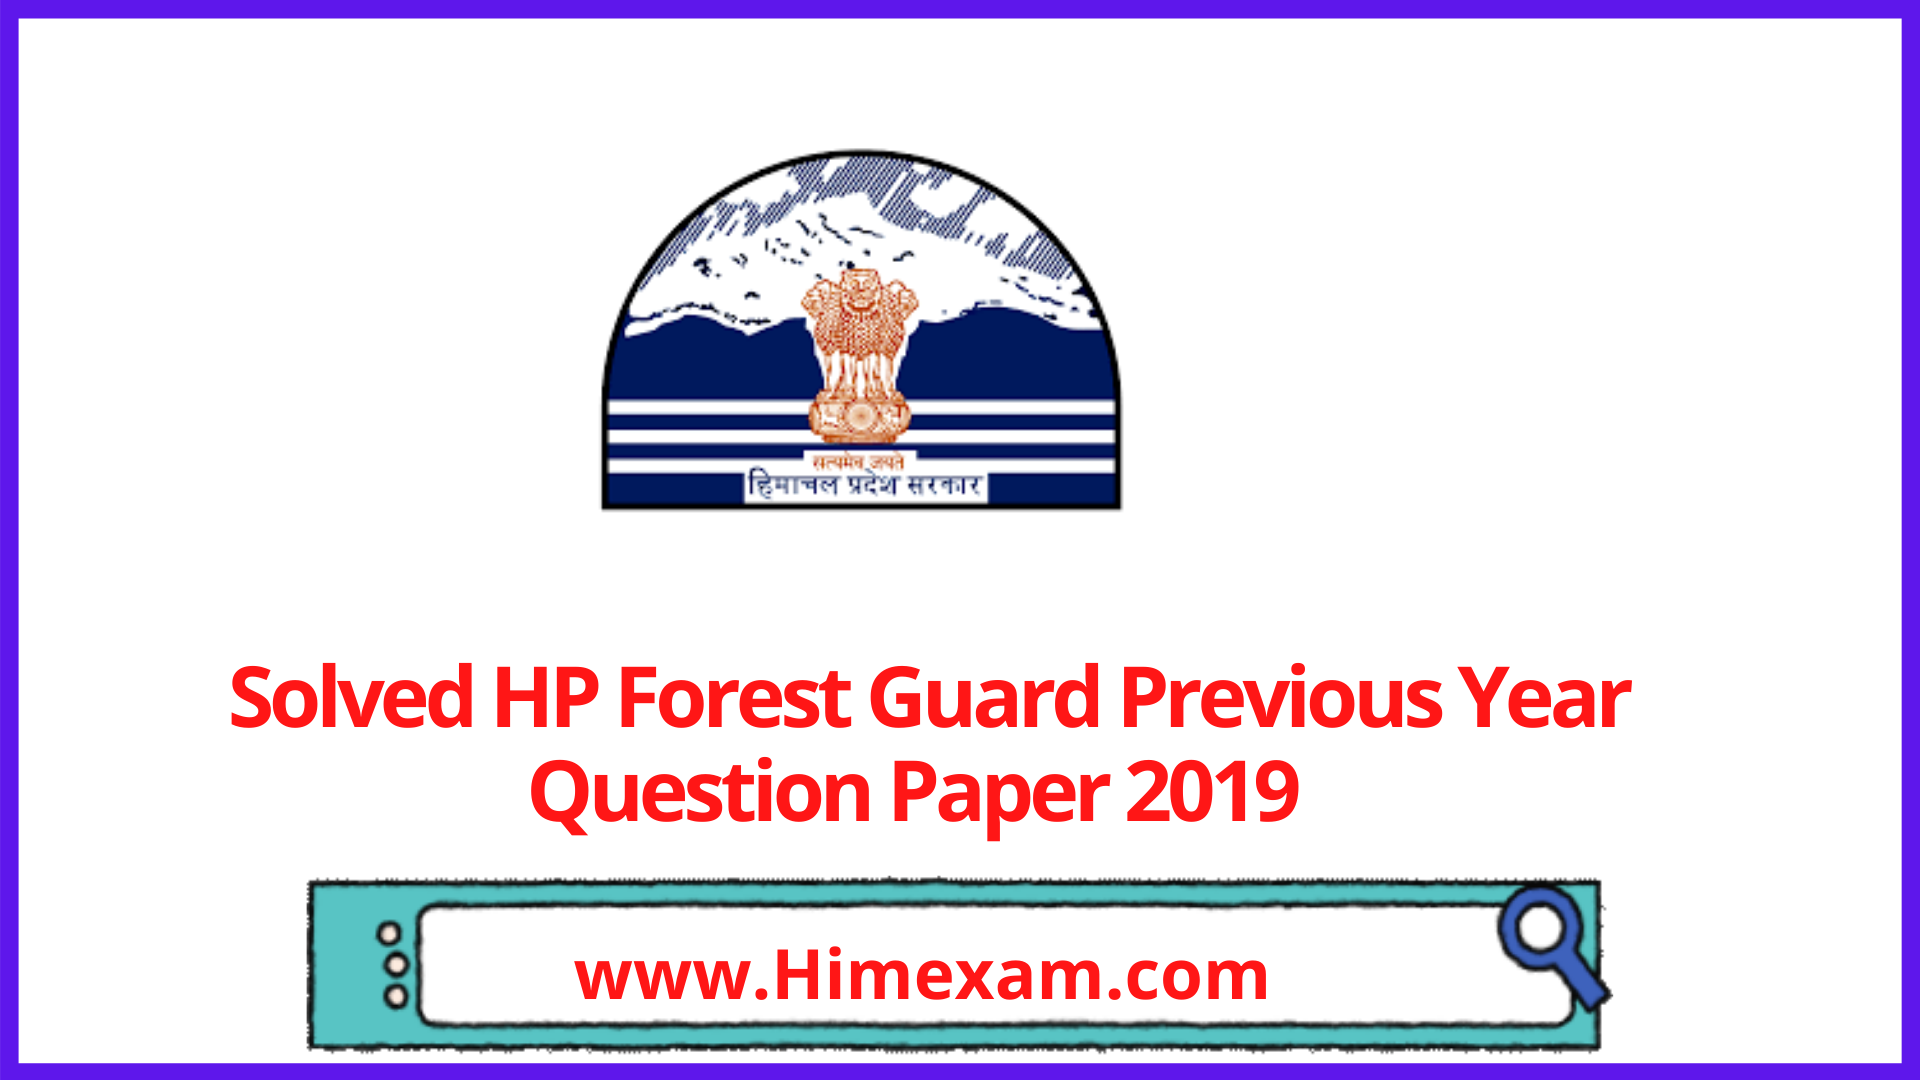 Solved HP Forest Guard Previous Year Question Paper 2019